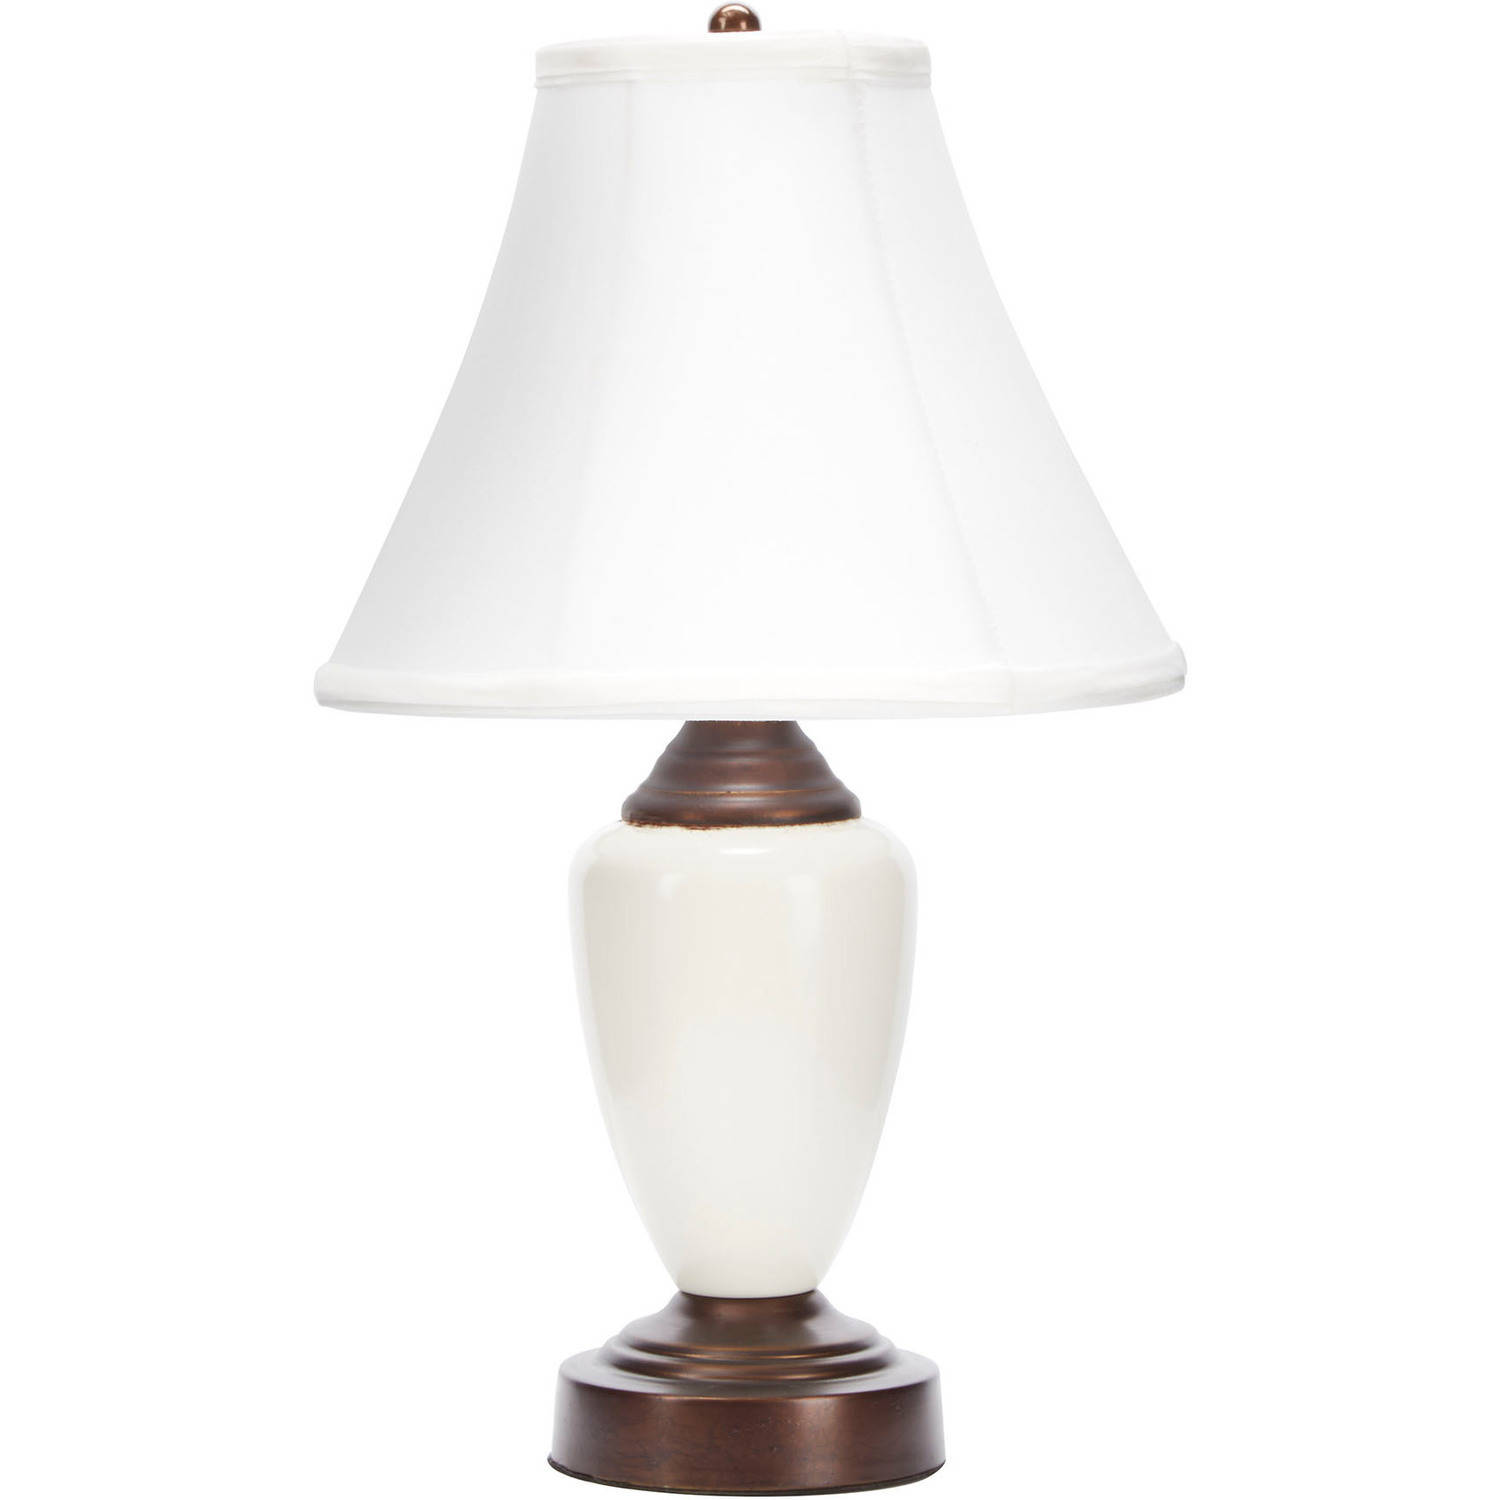 Better homes and gardens touch lamp multiple colors walmart mozeypictures Gallery